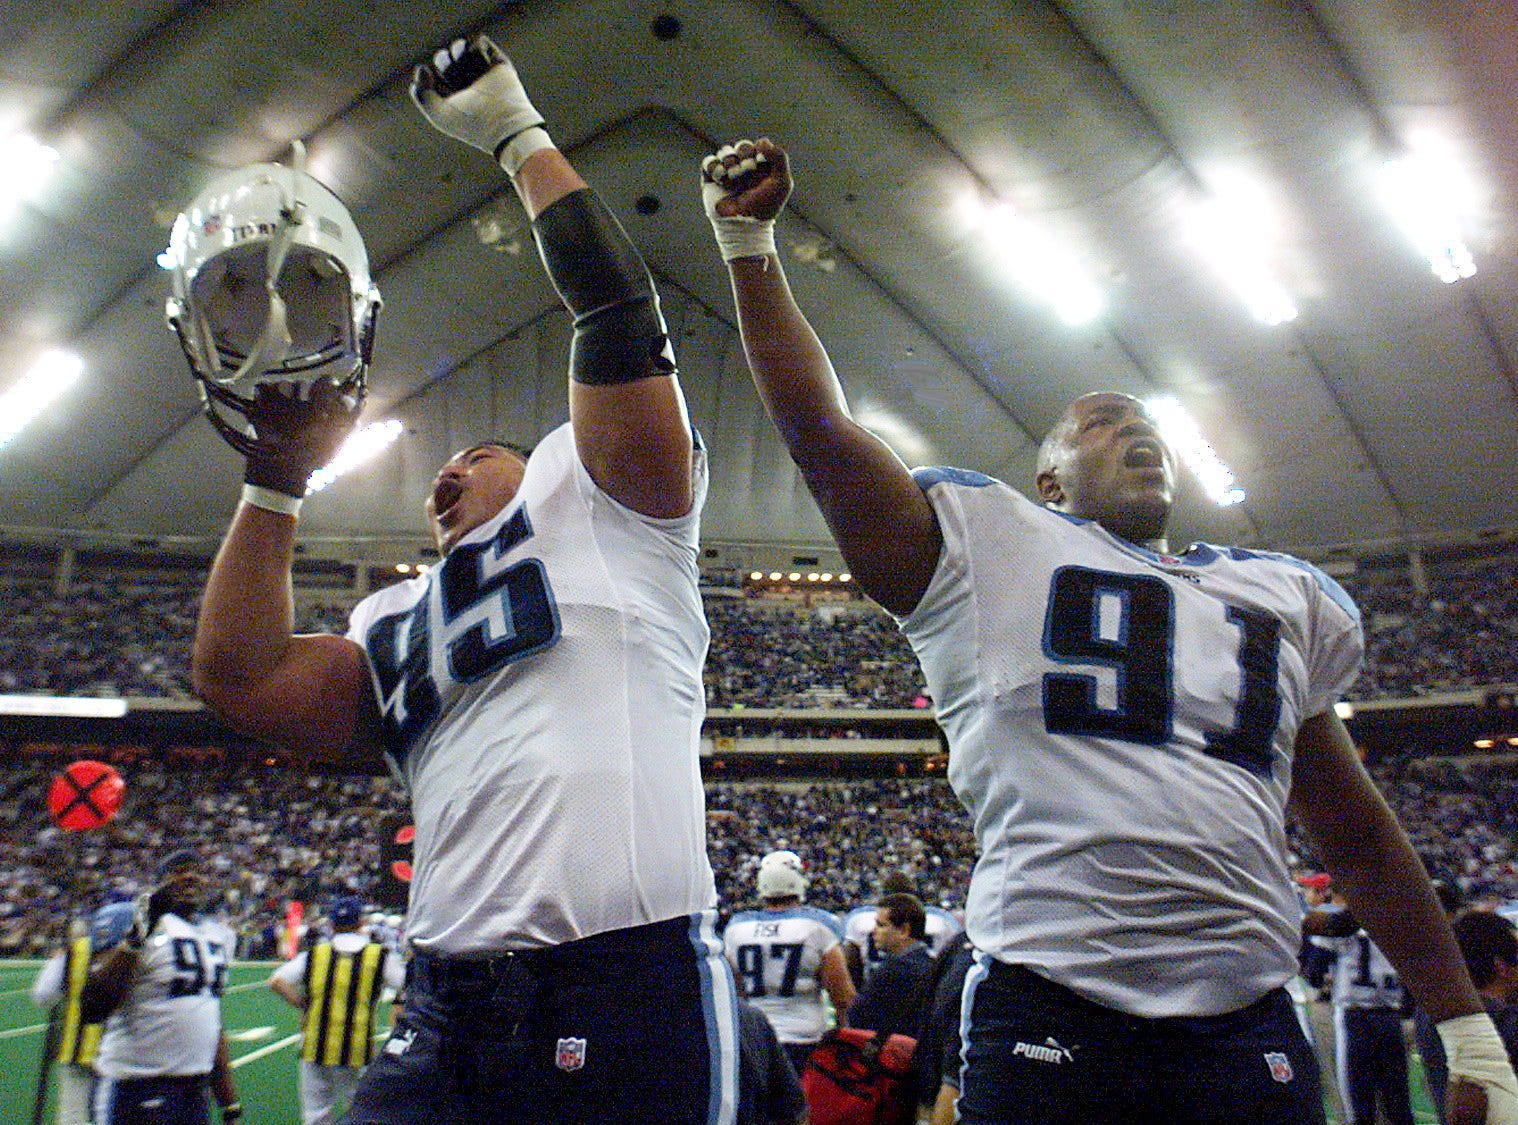 Joe Salave'a (95) and Josh Evans (91) of the Tennessee Titans celebrate on the sideline after defeating the Indianapolis Colts 19-16 at the RCA Dome in the AFC divisional playoff game at Indianapolis Jan. 16, 2000.